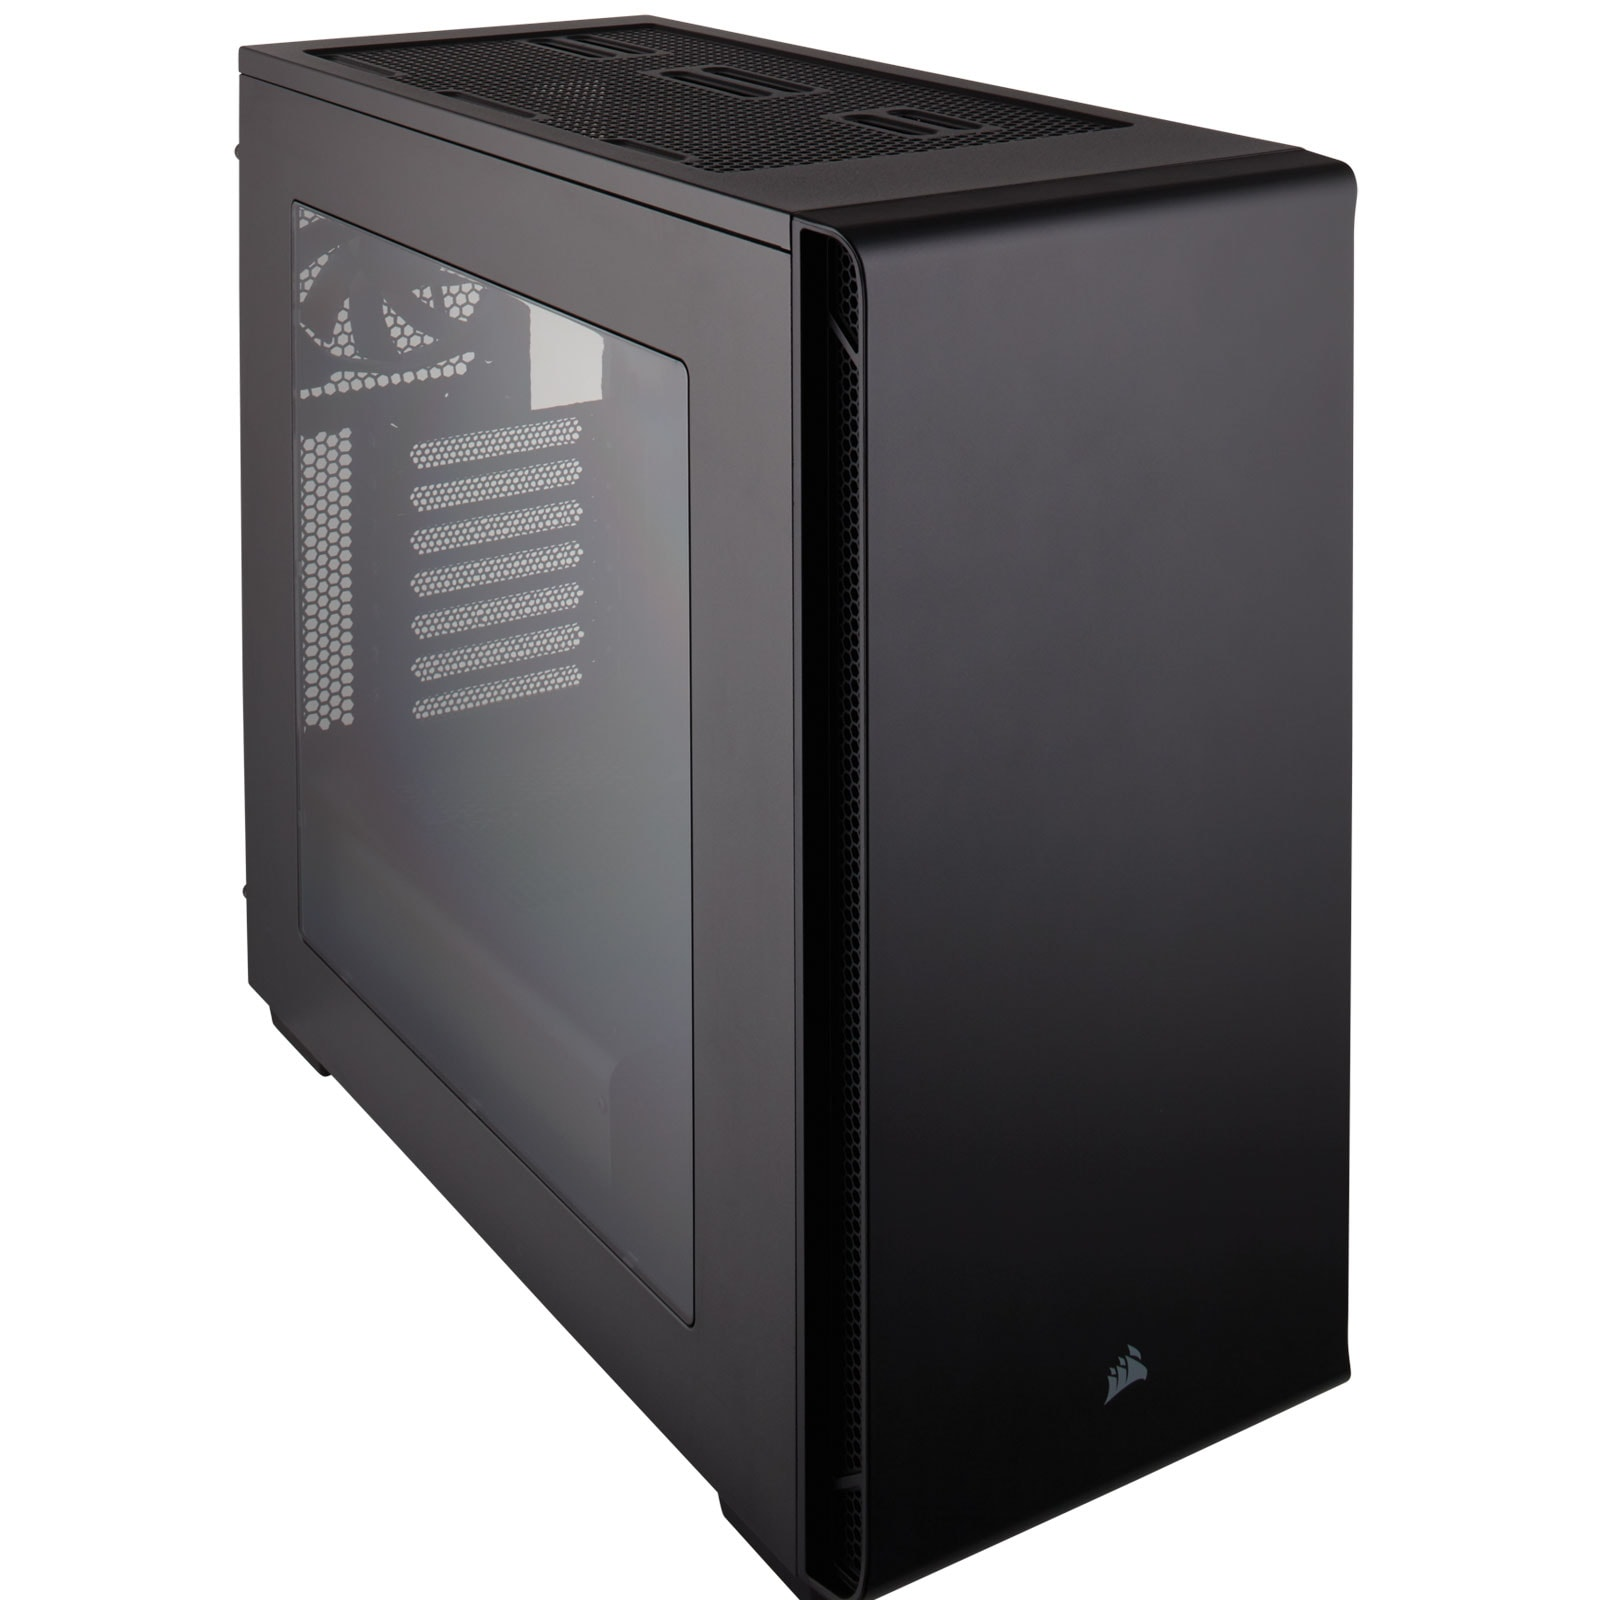 Corsair Carbide 270R Windowed CC-9011105-WW -MT/S.Alim/ATX Noir - Boîtier PC - 4